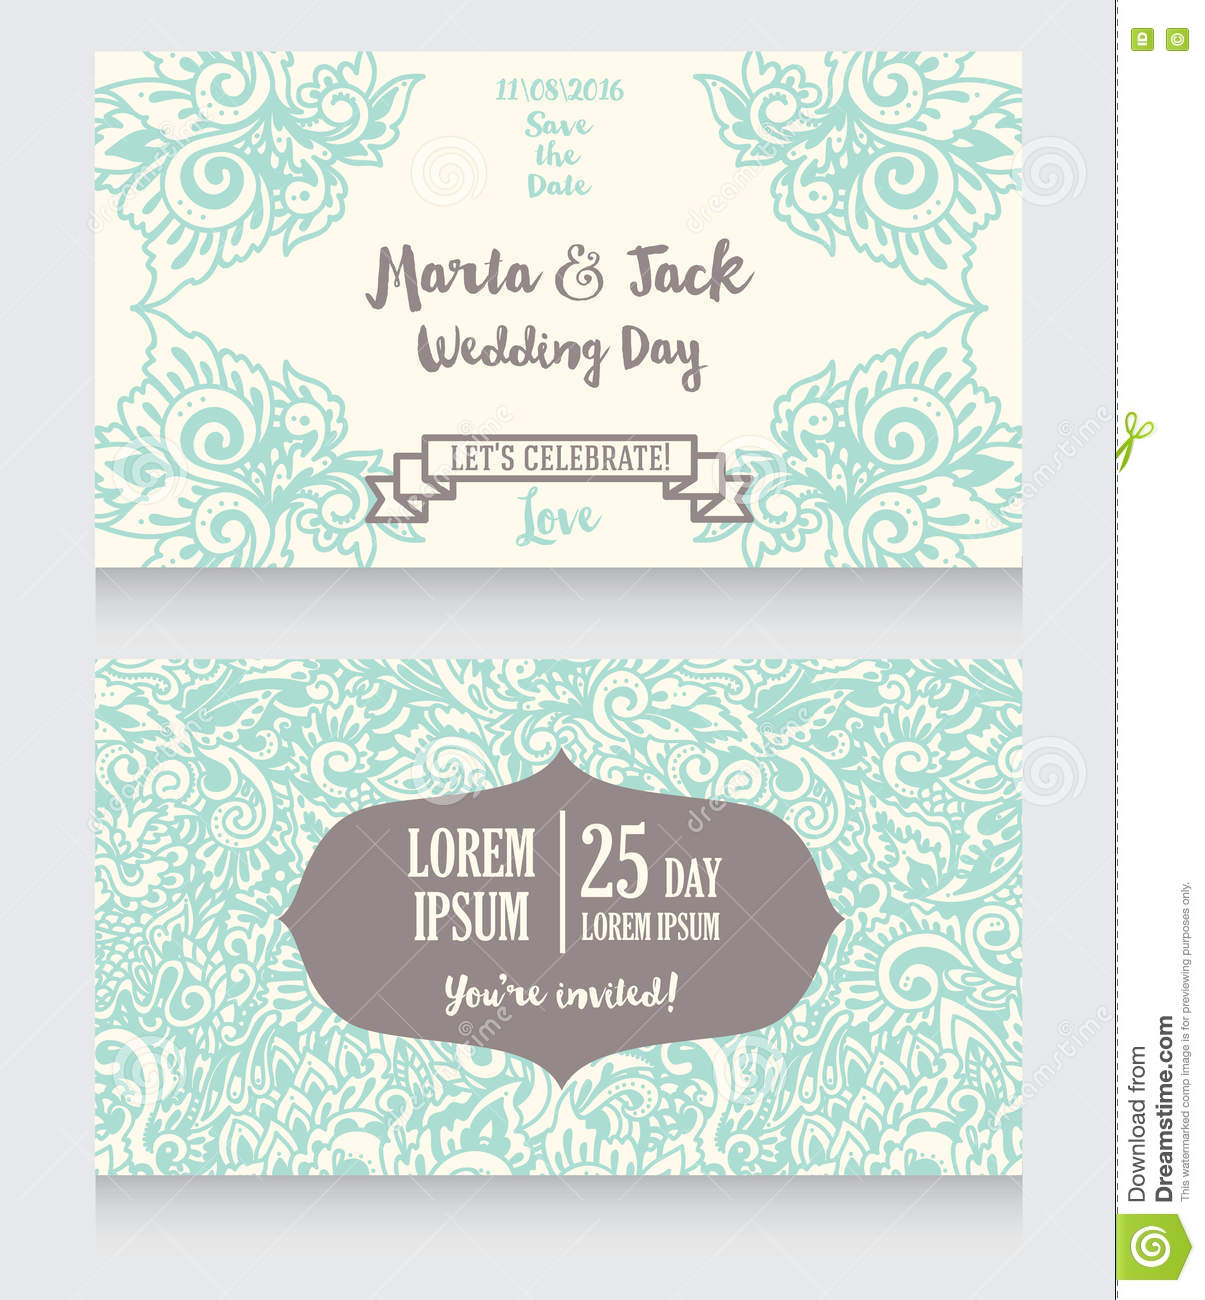 Template For Wedding Invitations In Boho Style Stock Vector ...